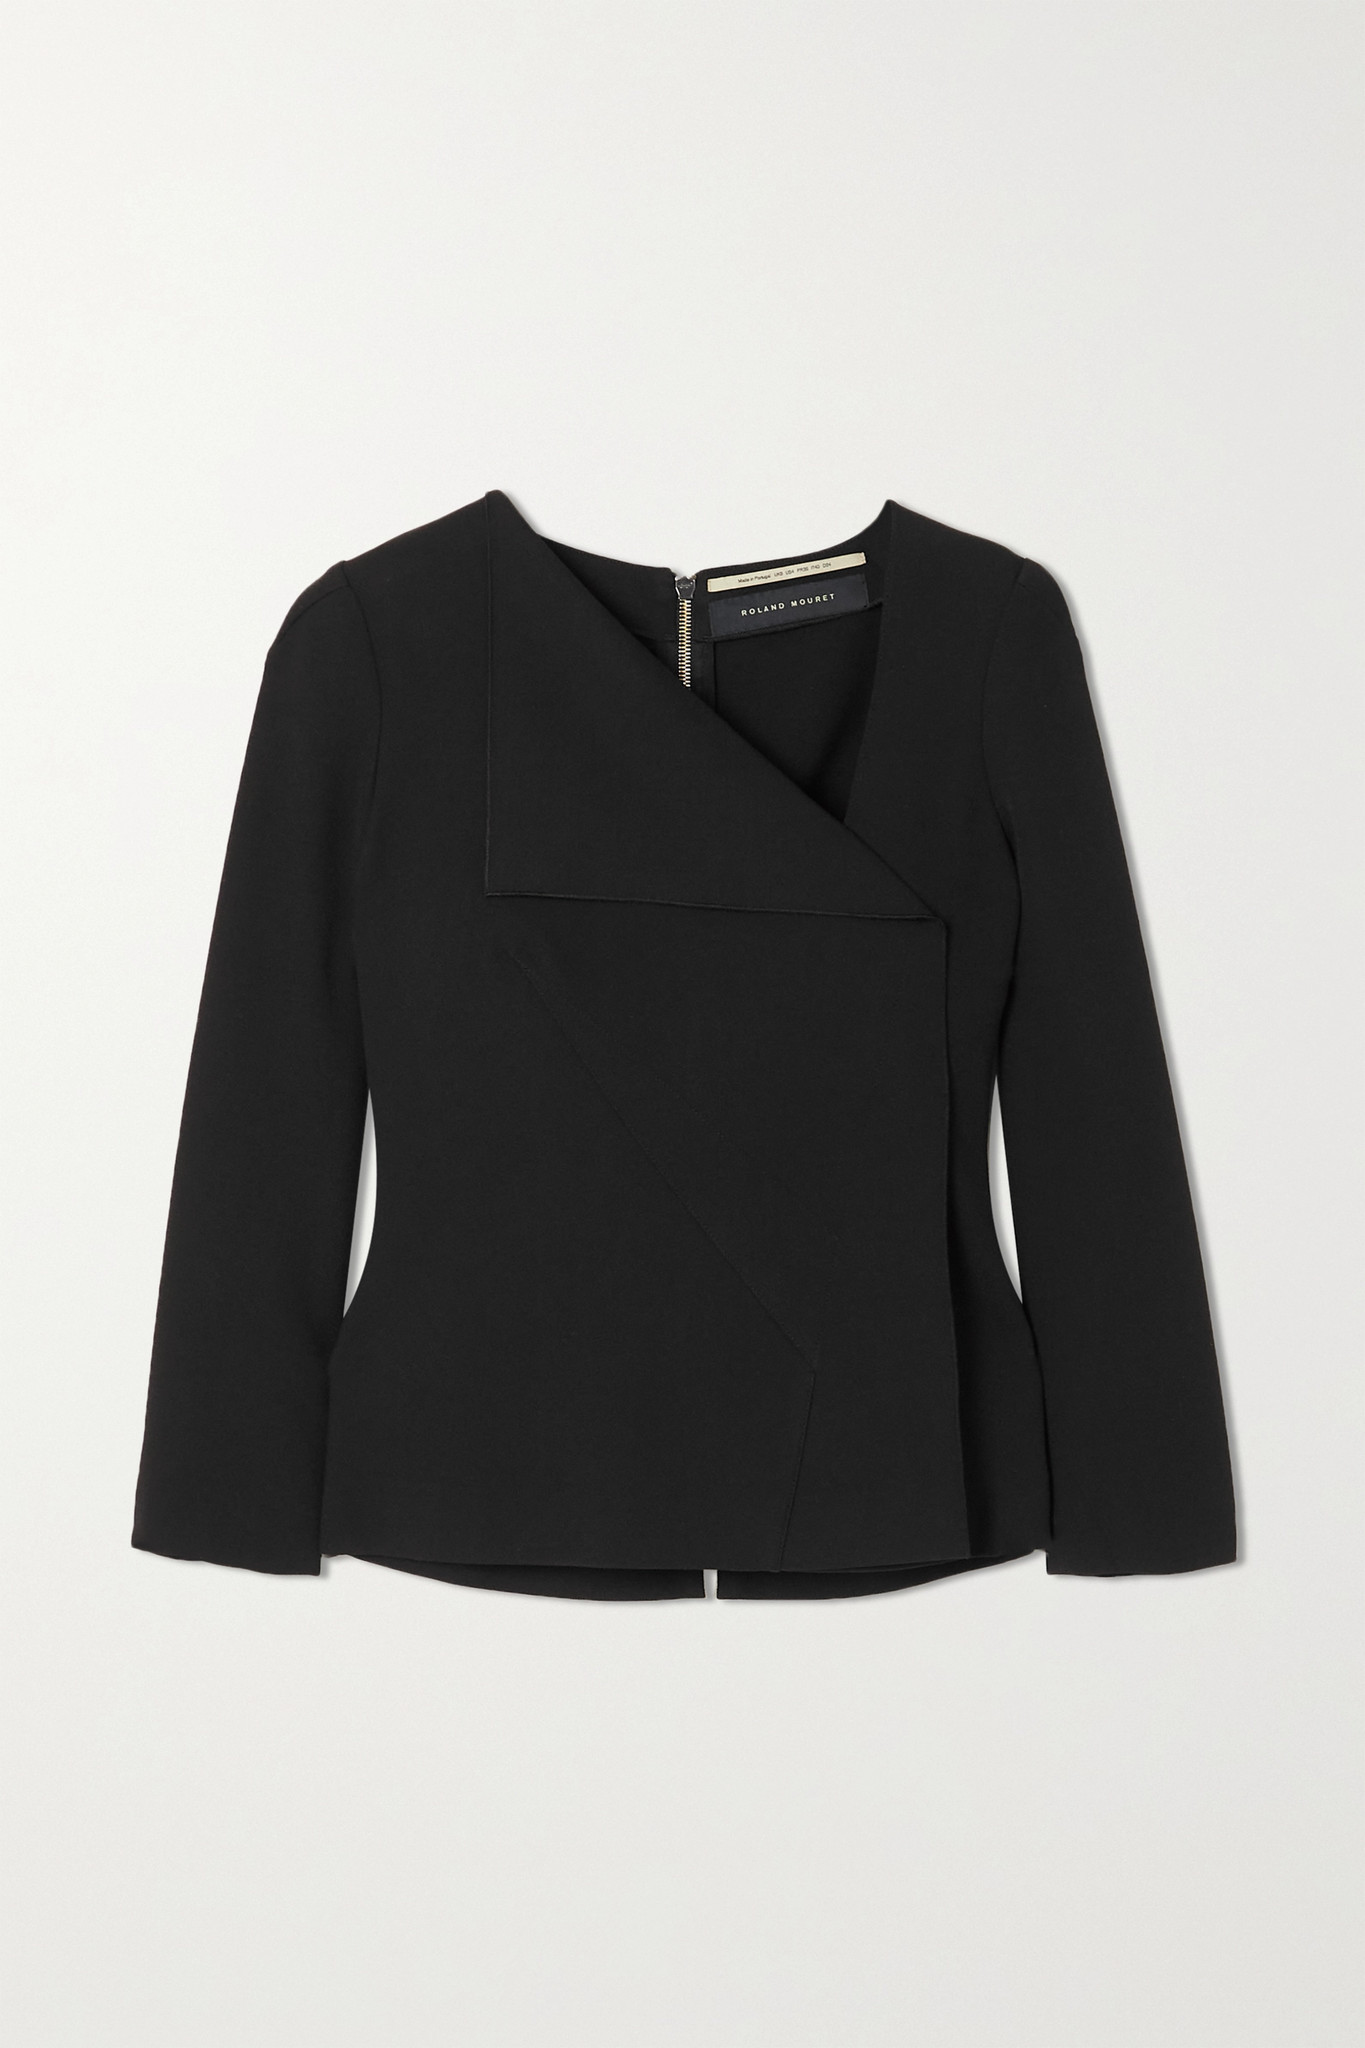 ROLAND MOURET - Mayfly Crepe Top - Black - UK8